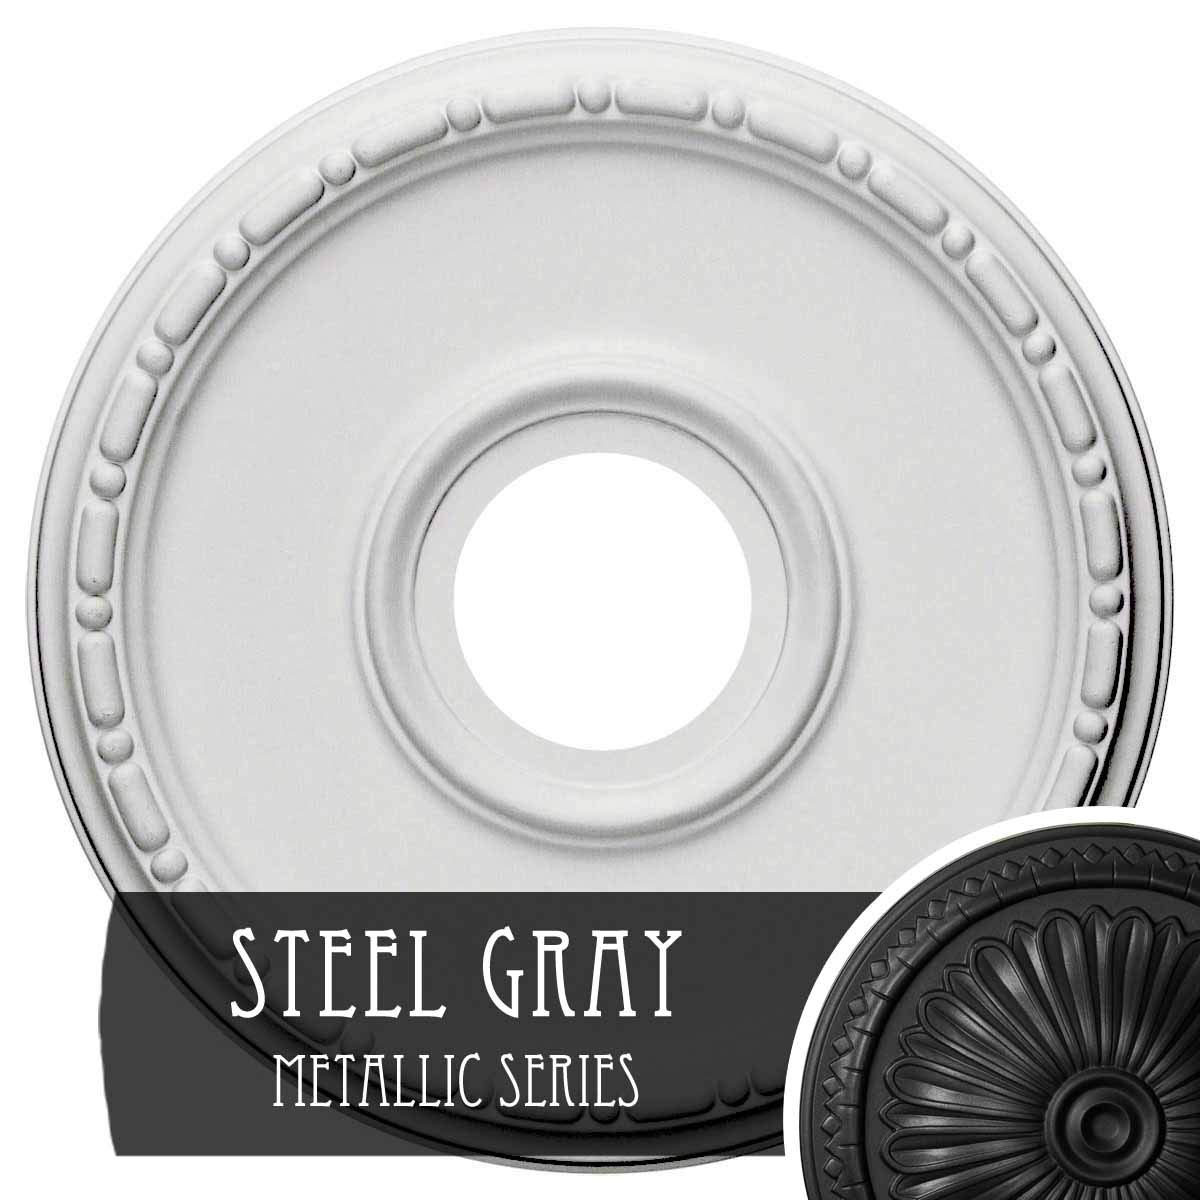 Ekena Millwork CM16MESGS 16 OD X 3 7/8'' ID X 1 1/2'' P Medea Ceiling Medallion fits Canopies up to 5 3/8'', Steel Gray